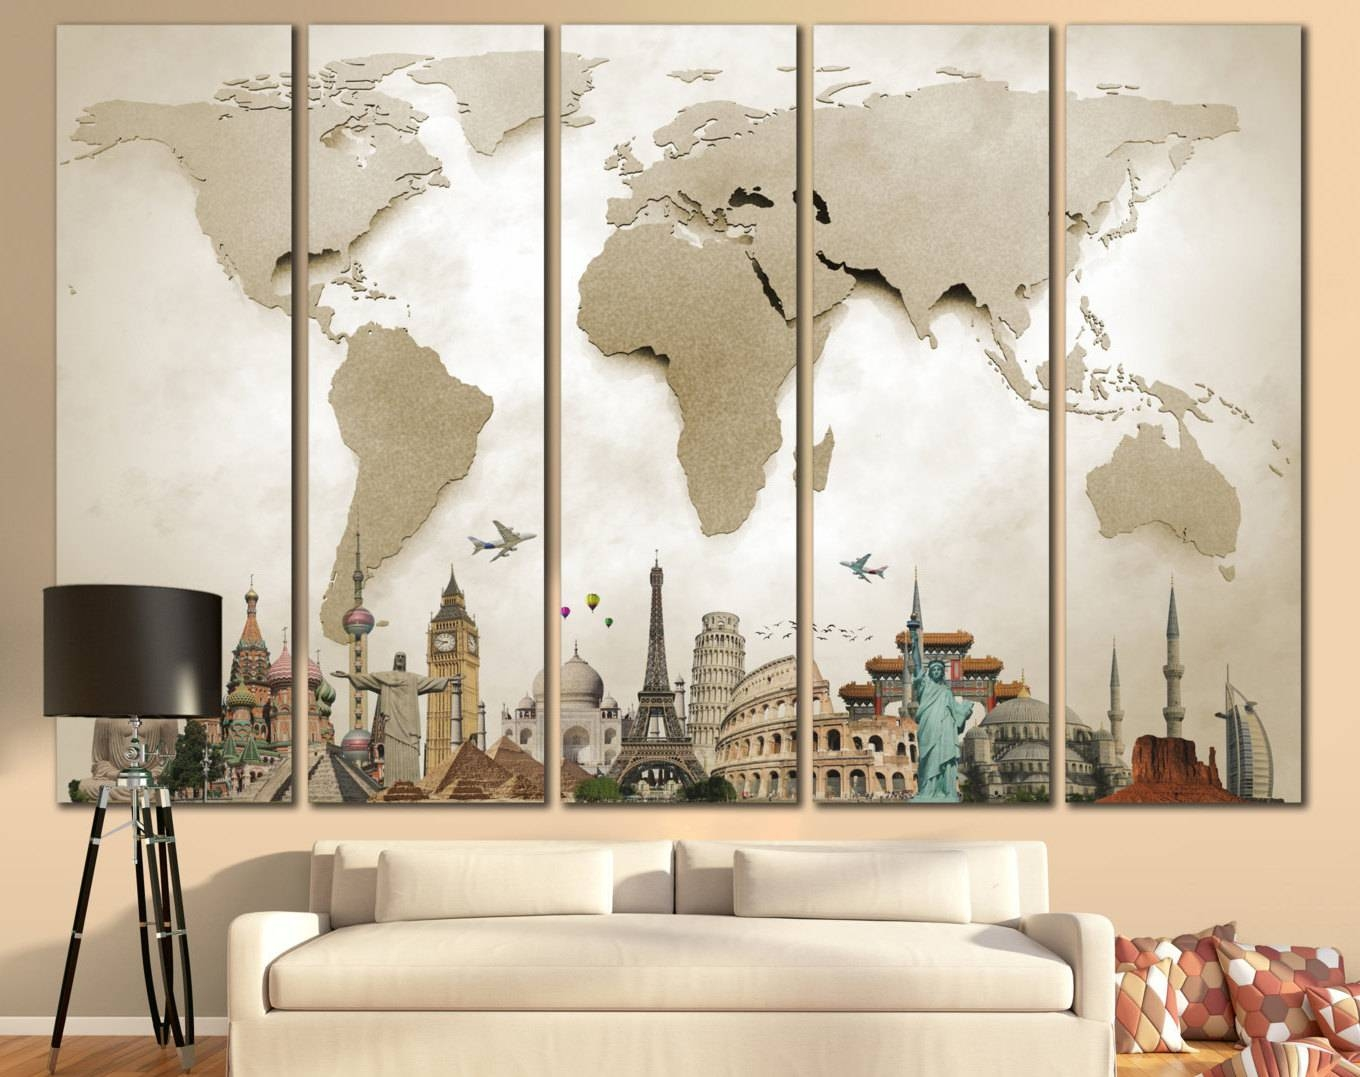 Decorating: Wonderful Word Of Wall Art And Modern White Sofa Plus In Most Current Cool Map Wall Art (View 12 of 20)